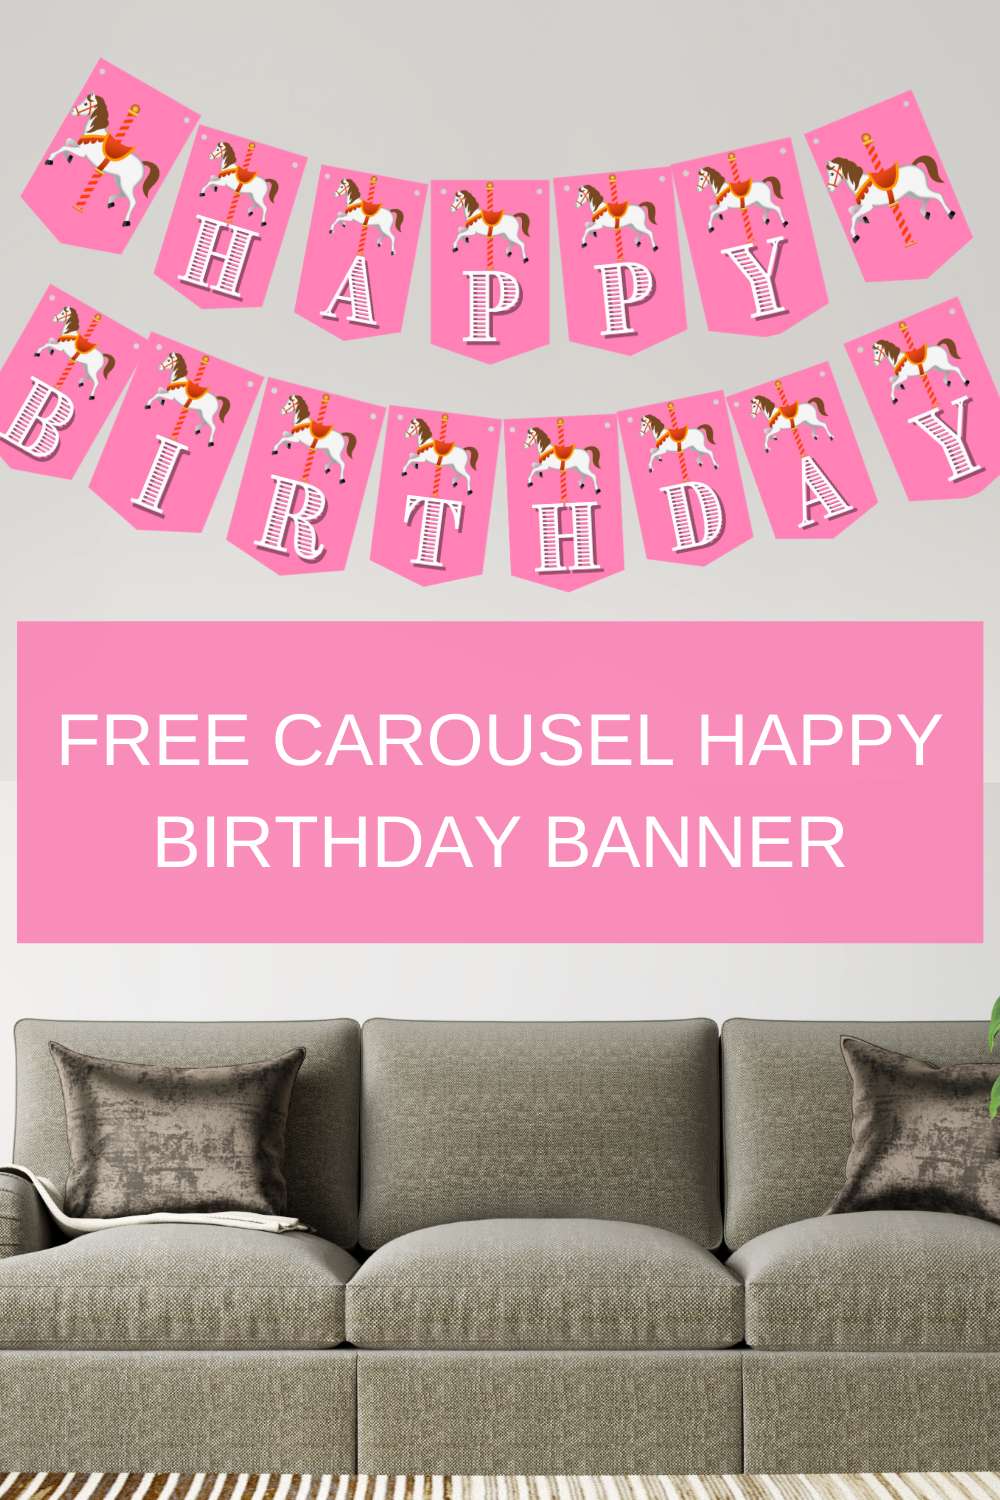 1st birthday banner for a carousel birthday party